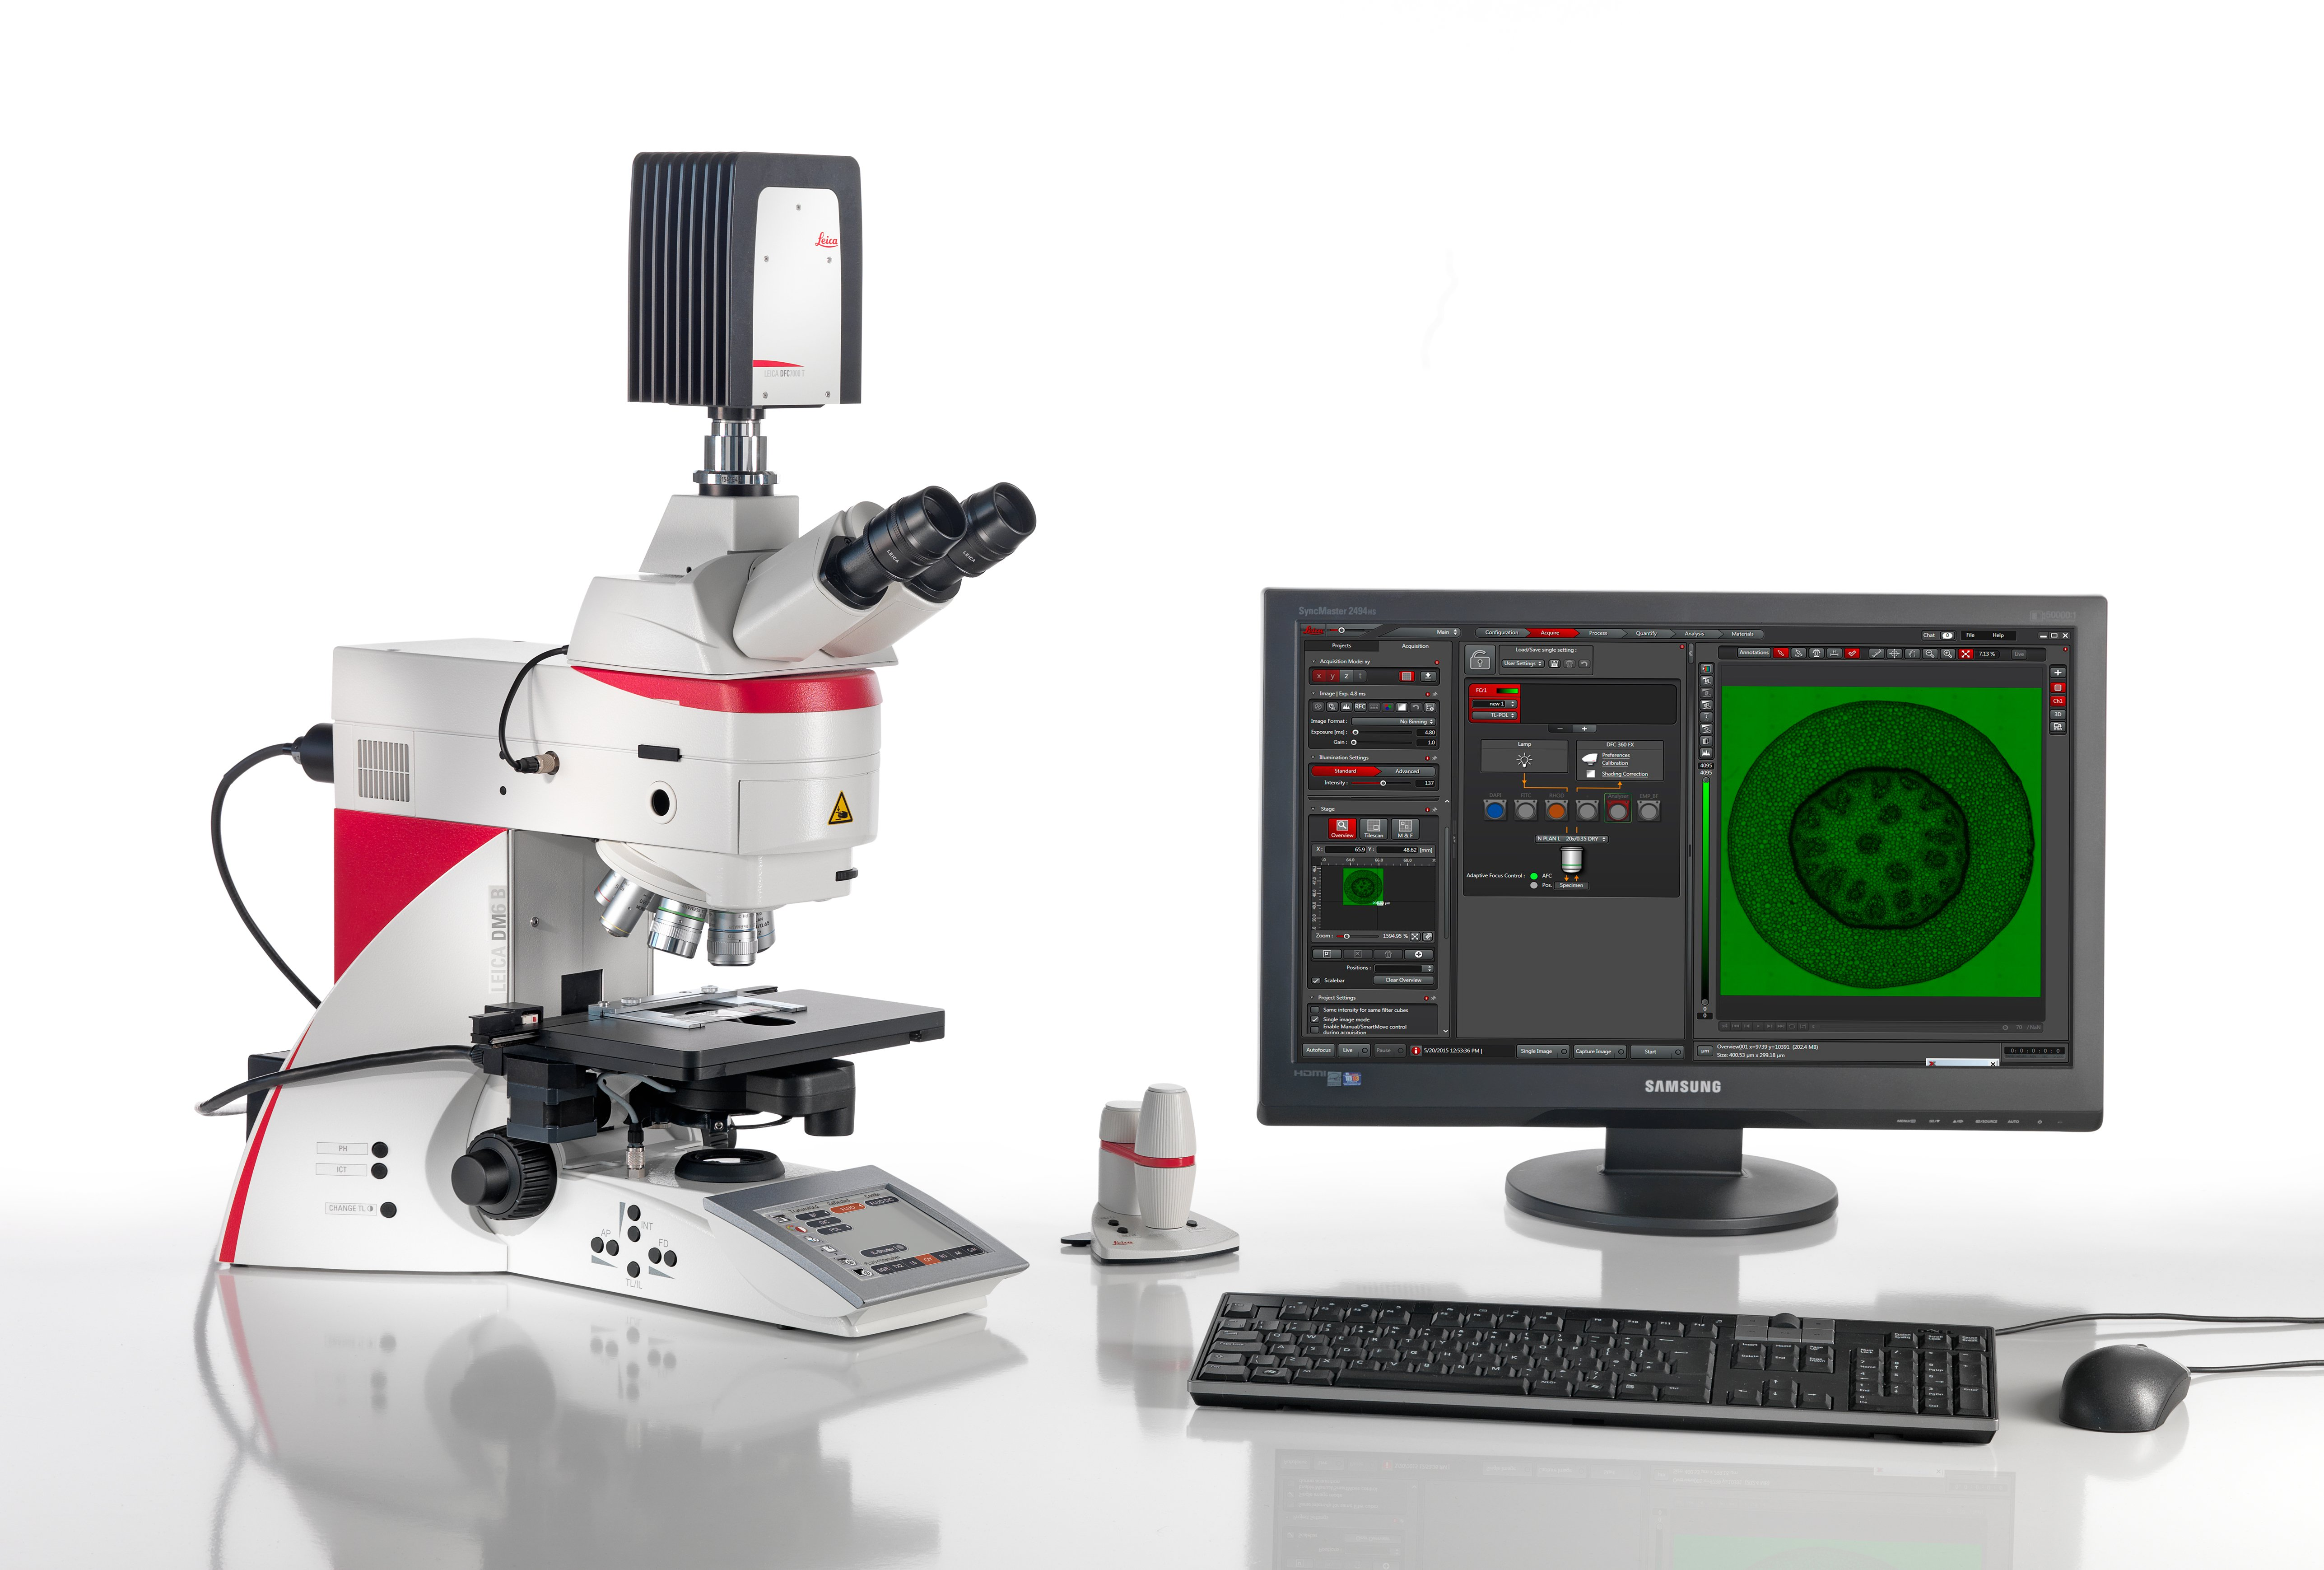 LAS X Widefield Systems performs workflow-guided advanced image analysis and includes a full range of image enhancement tools.